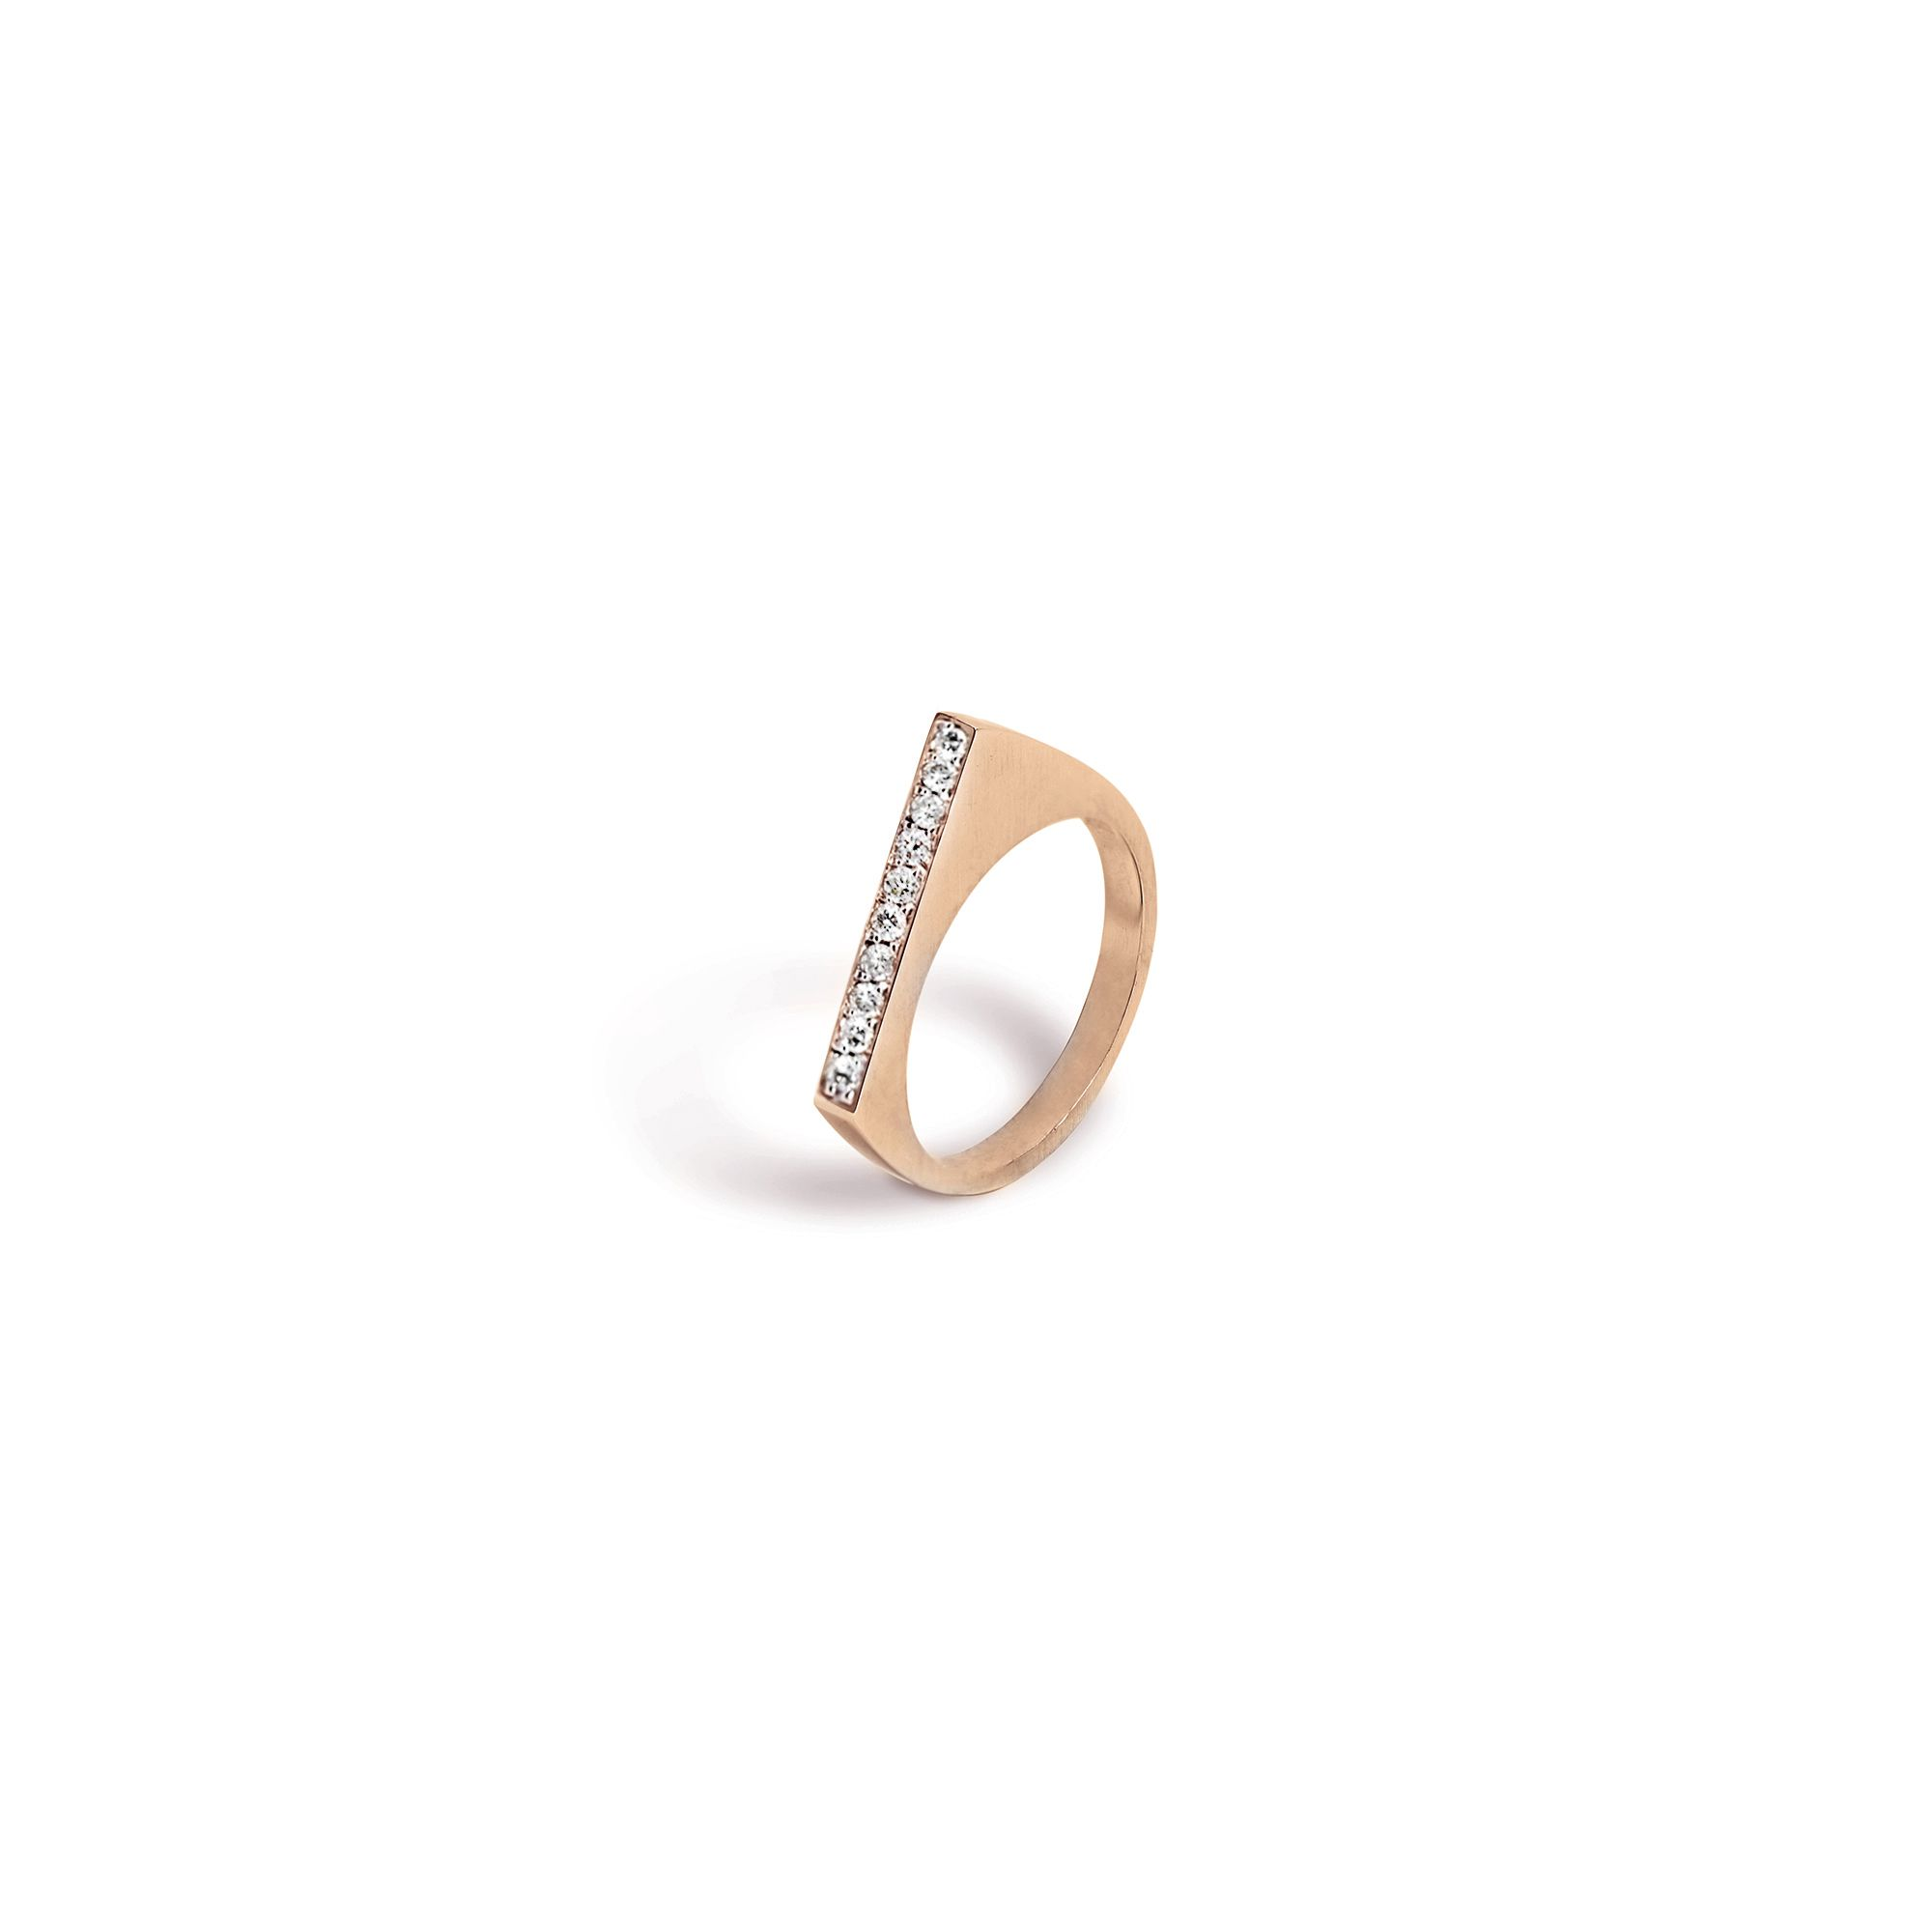 Rose gold modular 'Congiunzioni' point ring Ring in rose gold and diamonds